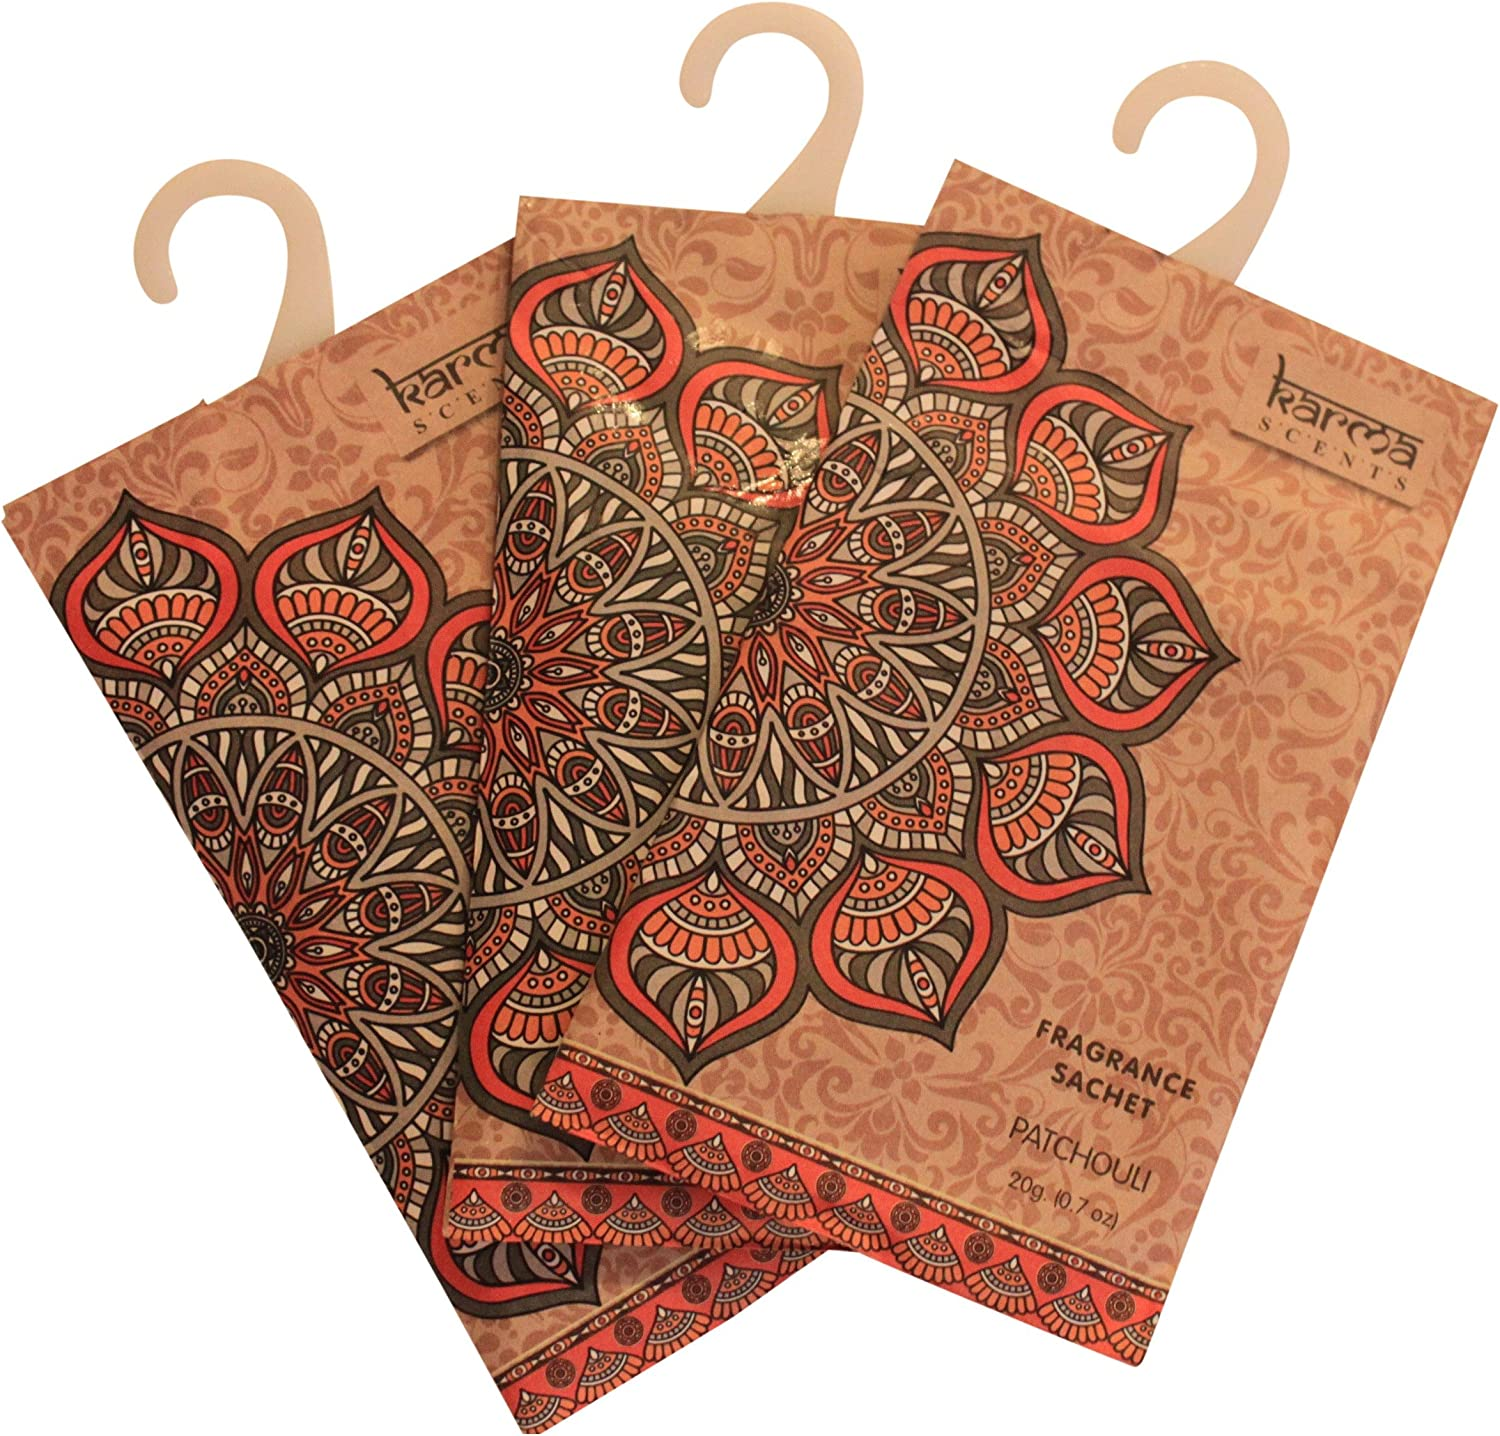 Premium Patchouli Scented Sachets for Drawers, Closets and Cars, Lovely Fresh fragrance, Lot of 12 Bags, By Karma Scents